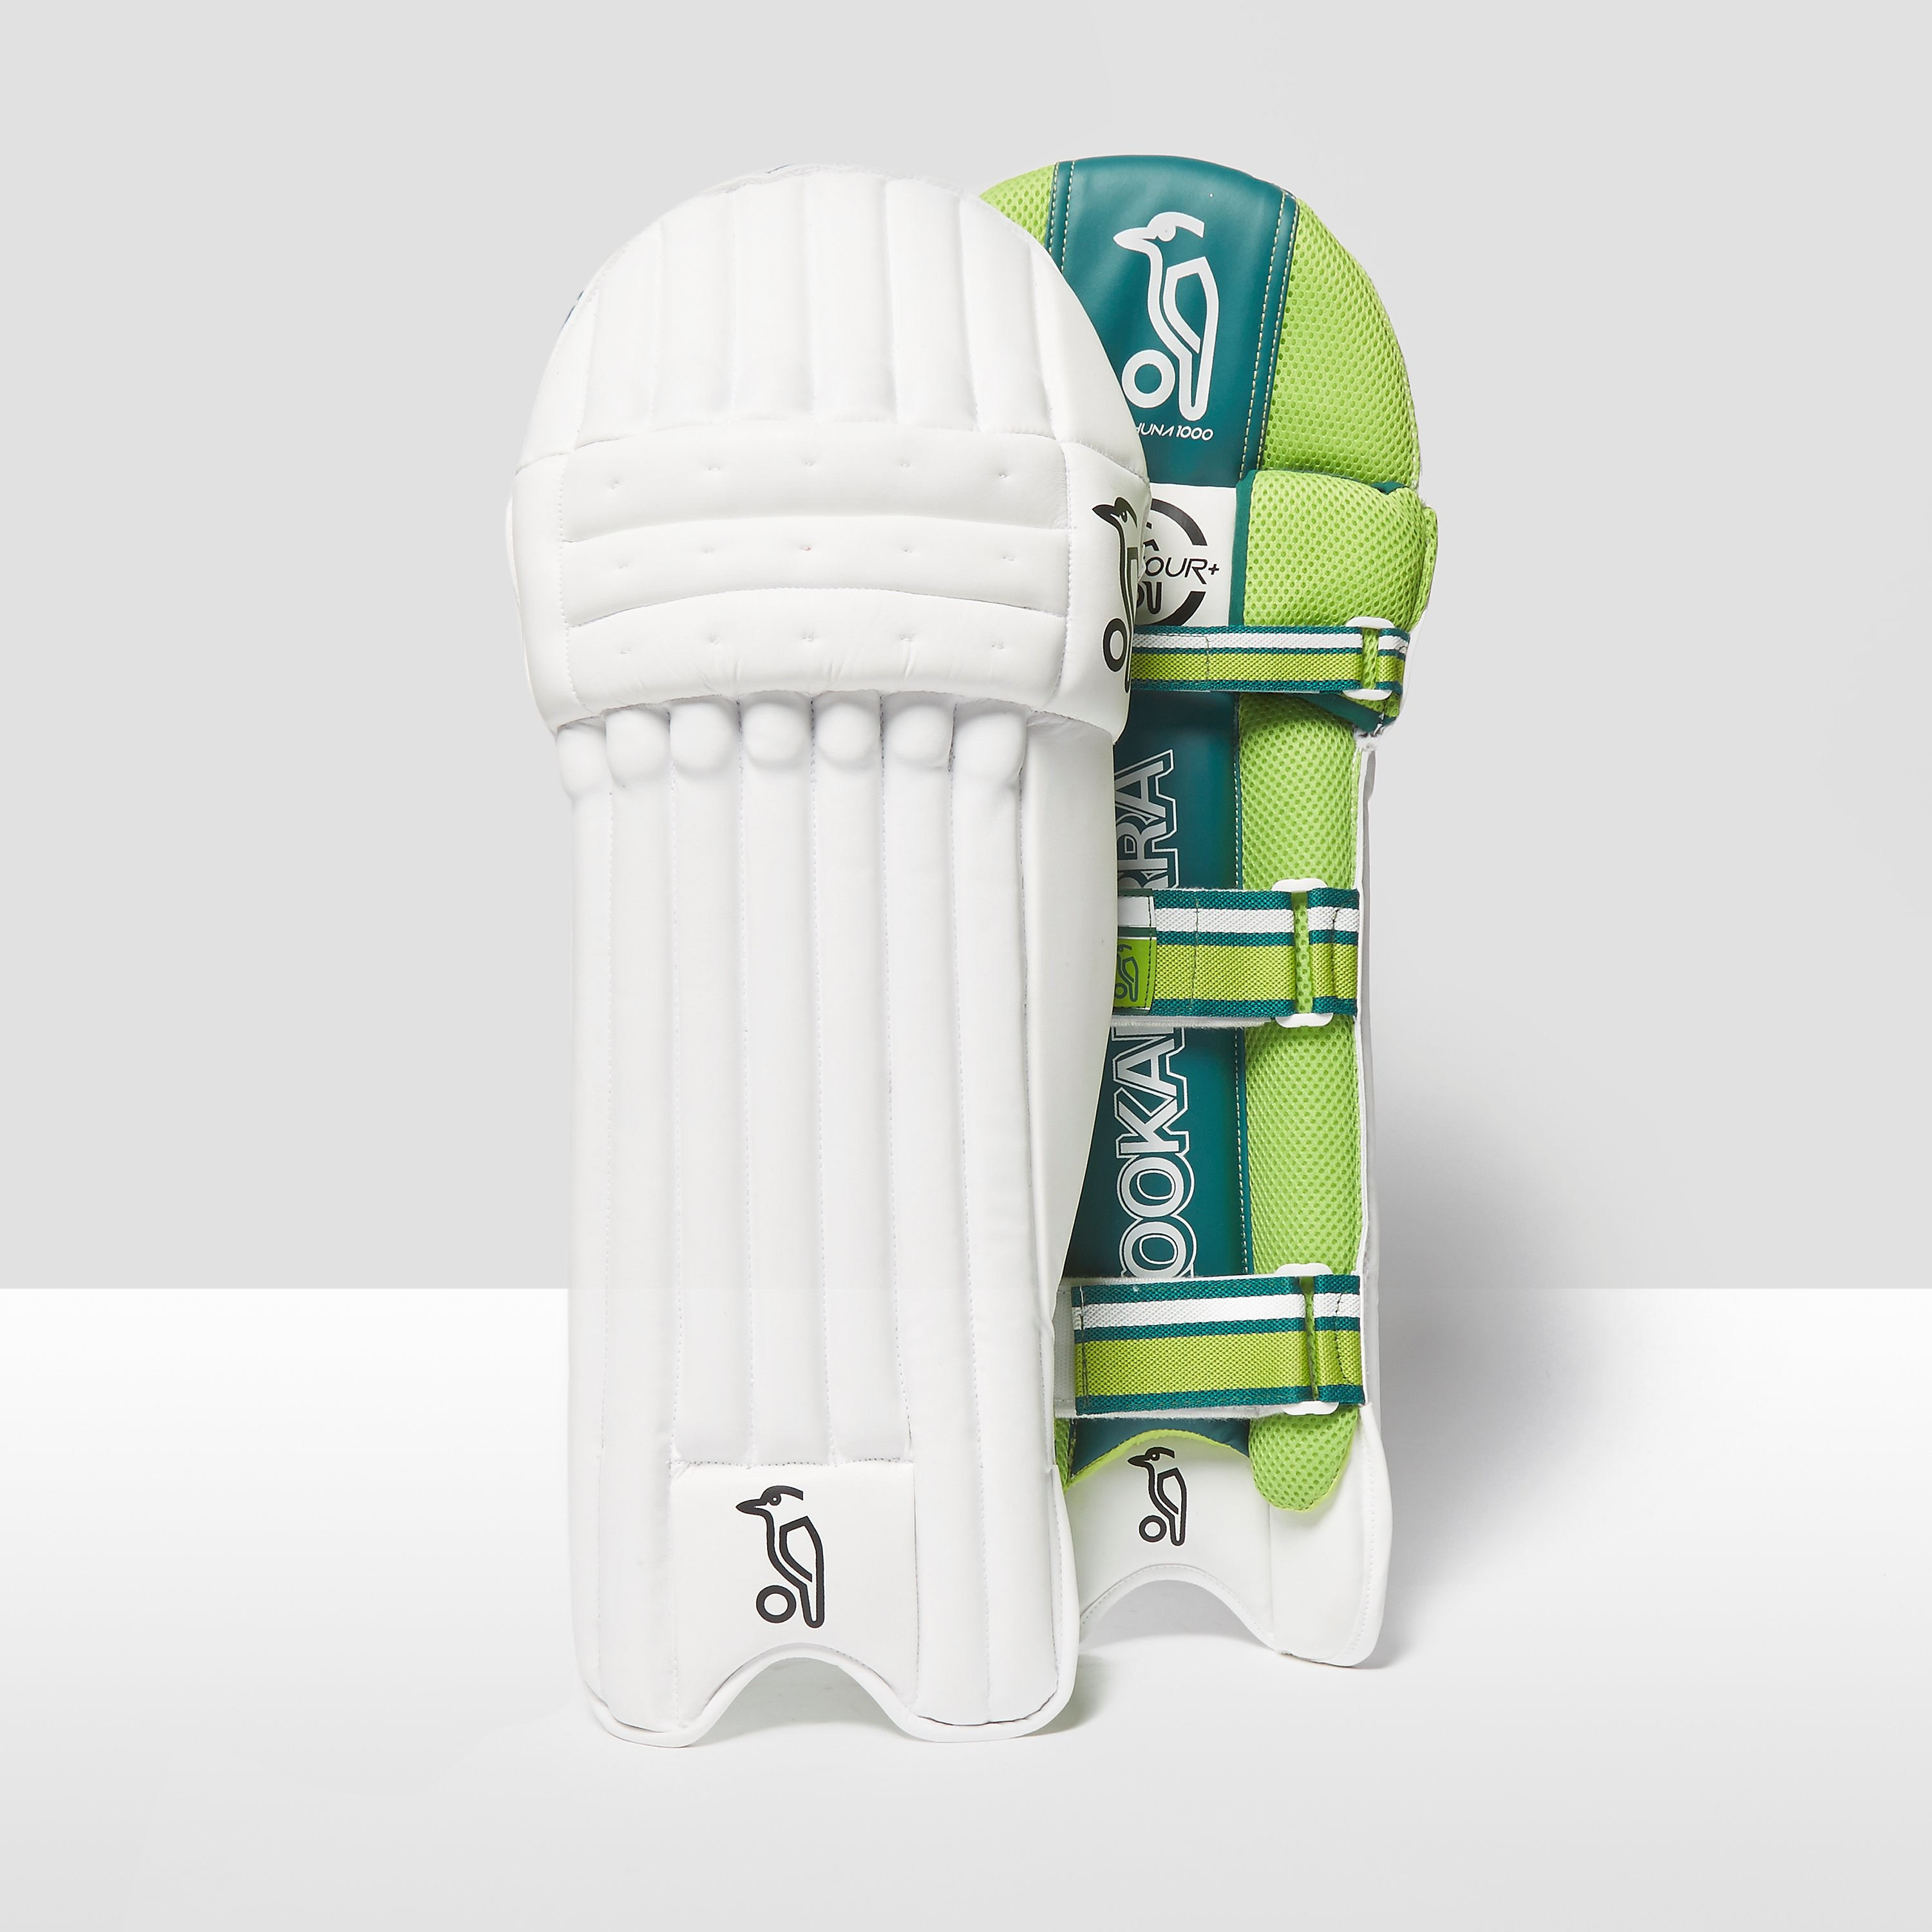 Kookaburra Kahuna 1000 Junior Batting Pads